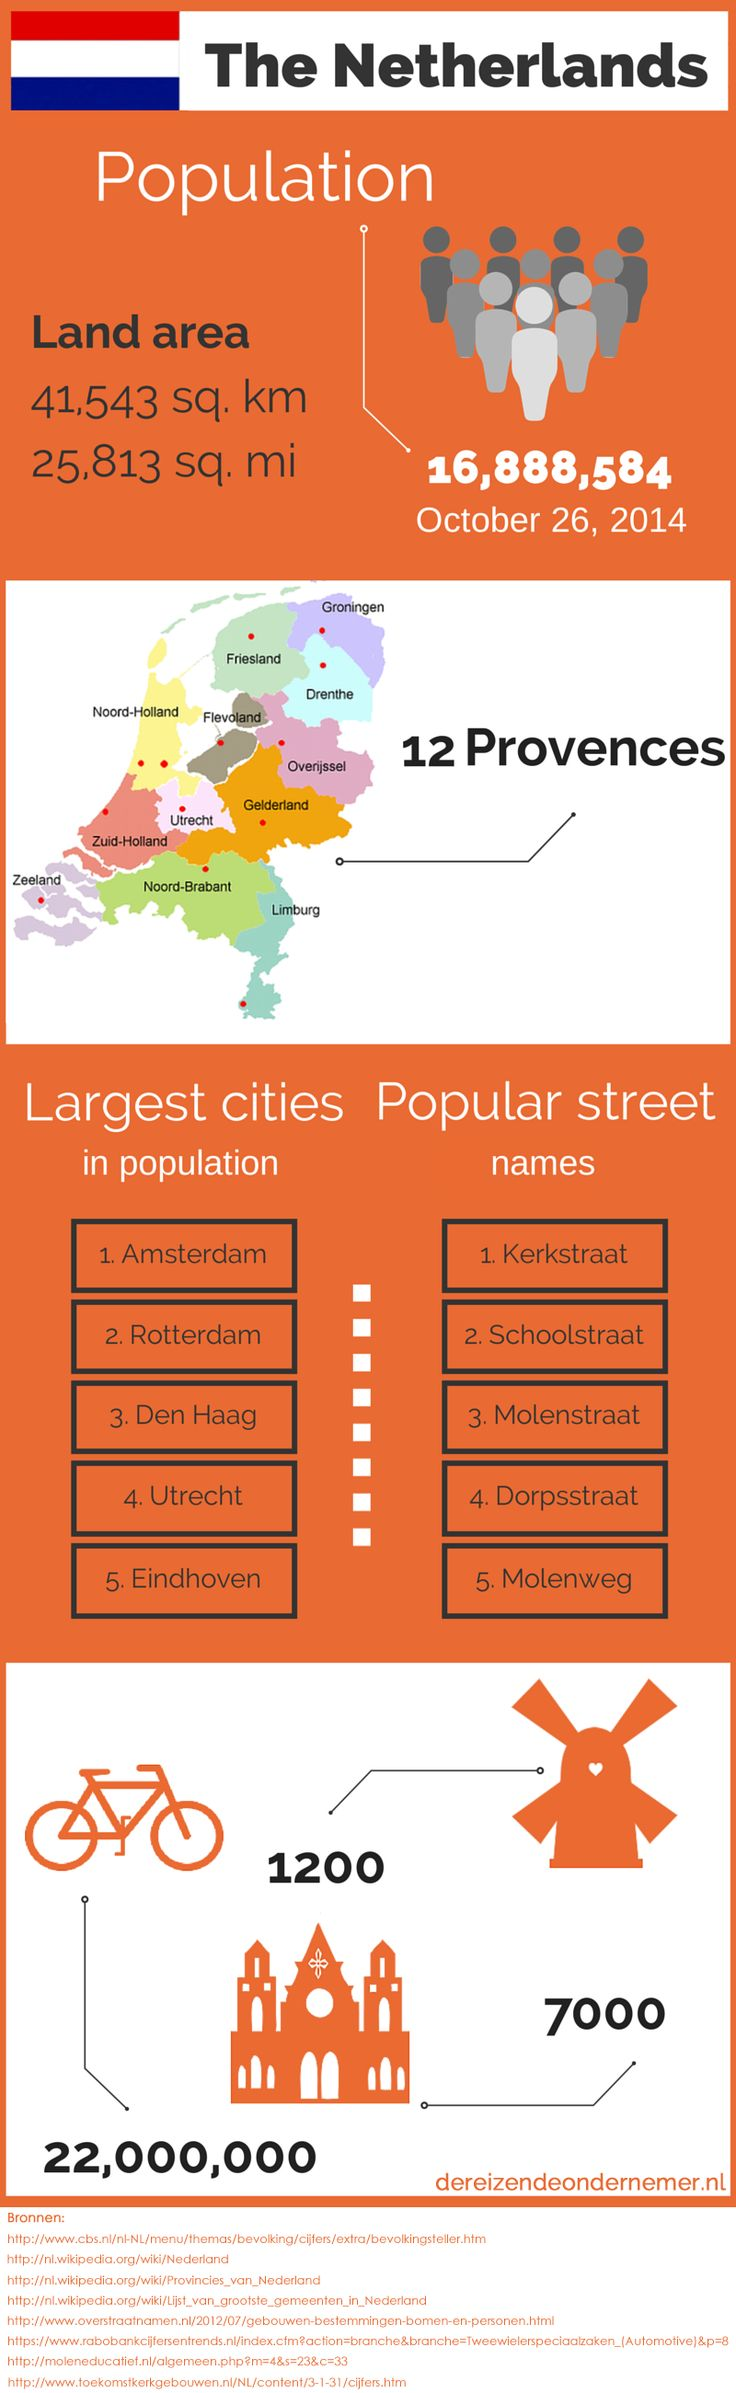 Infographic about the Netherlands....Dutch page - De reizende ondernemer